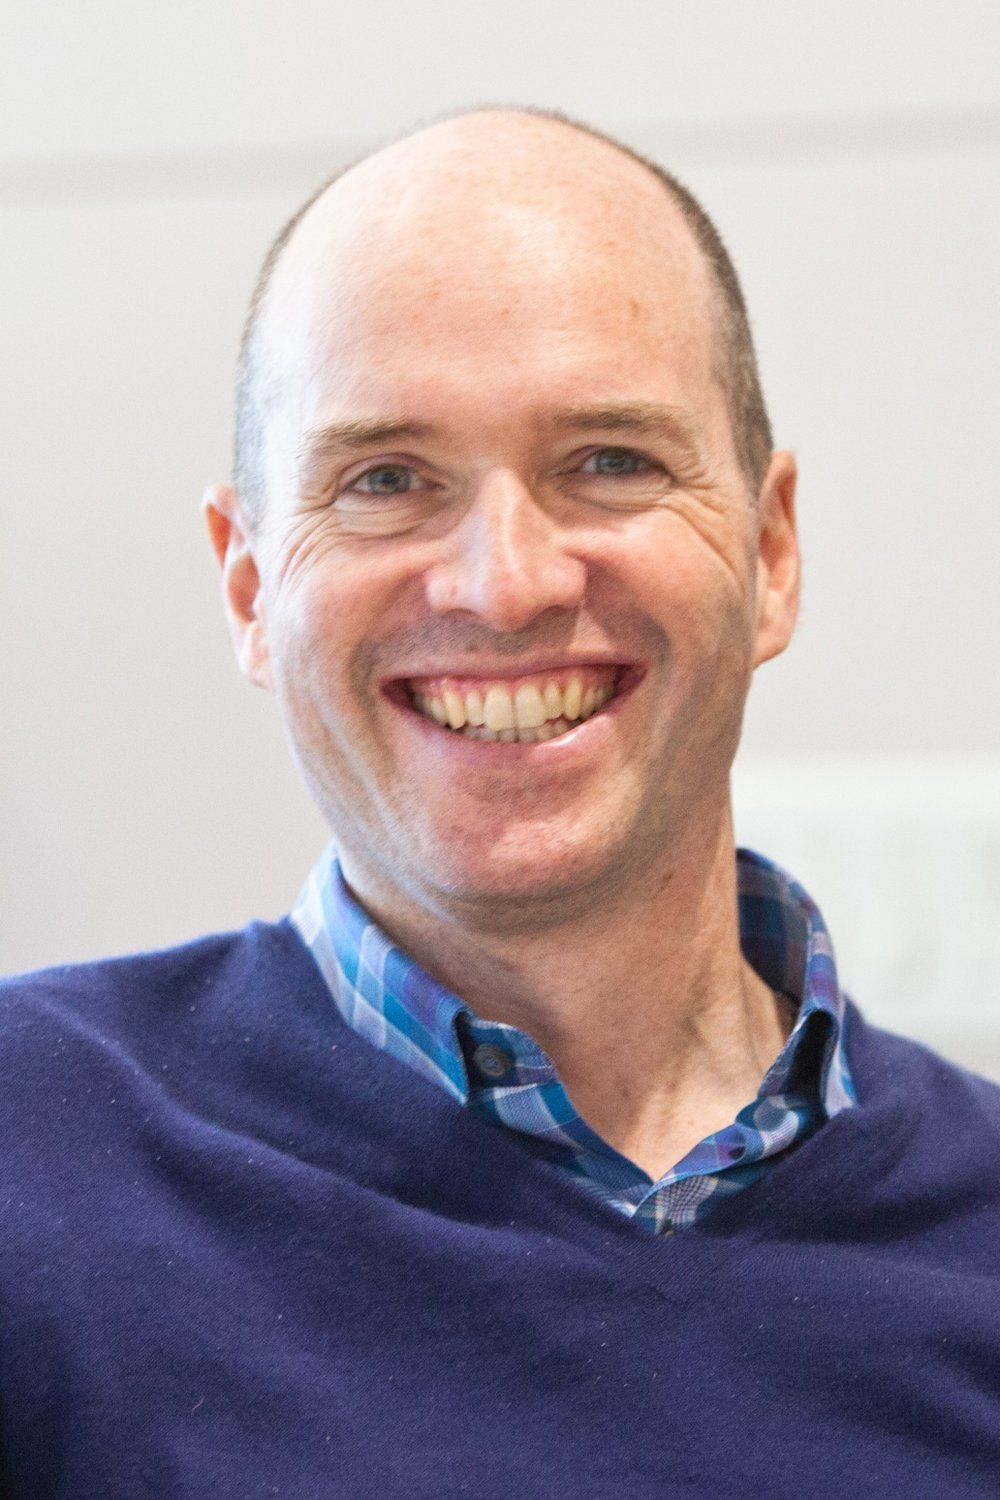 BEN HOROWITZ   Co-Founder, General Partner Andreessen Horowitz